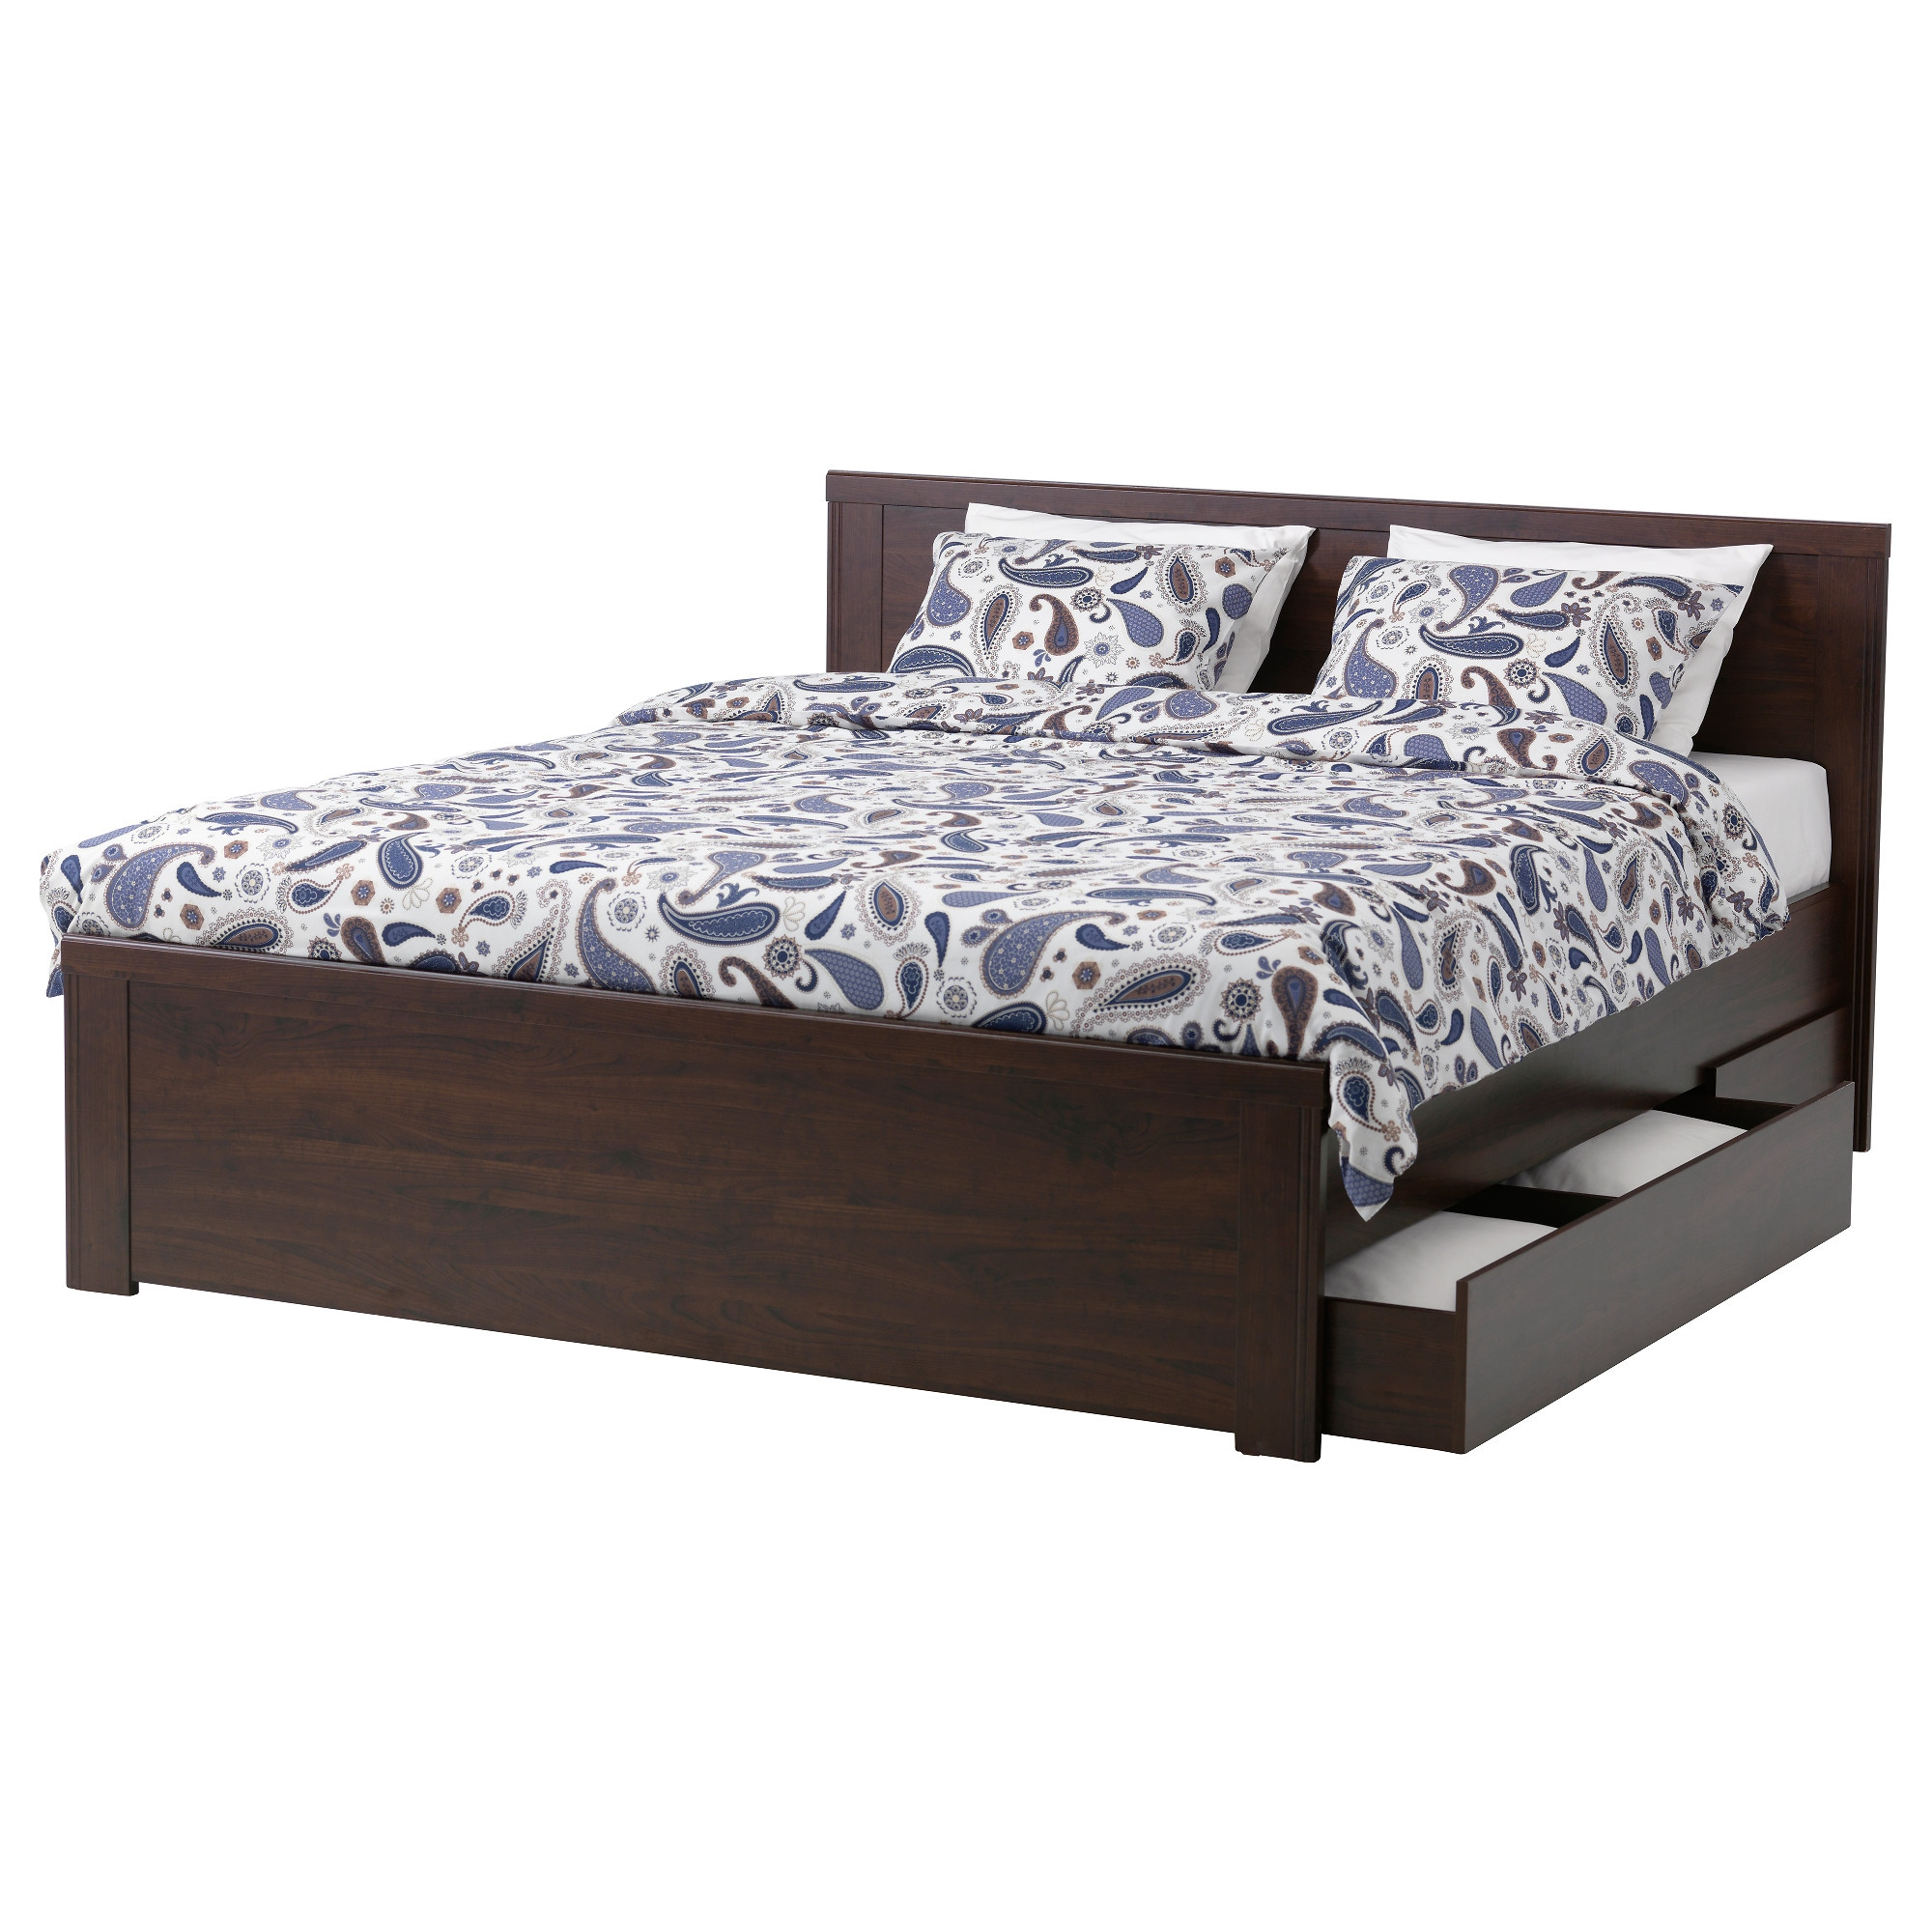 Bed frame with storage - Brusali Bed Frame With 2 Storage Boxes Brown Lur Y Length 81 7